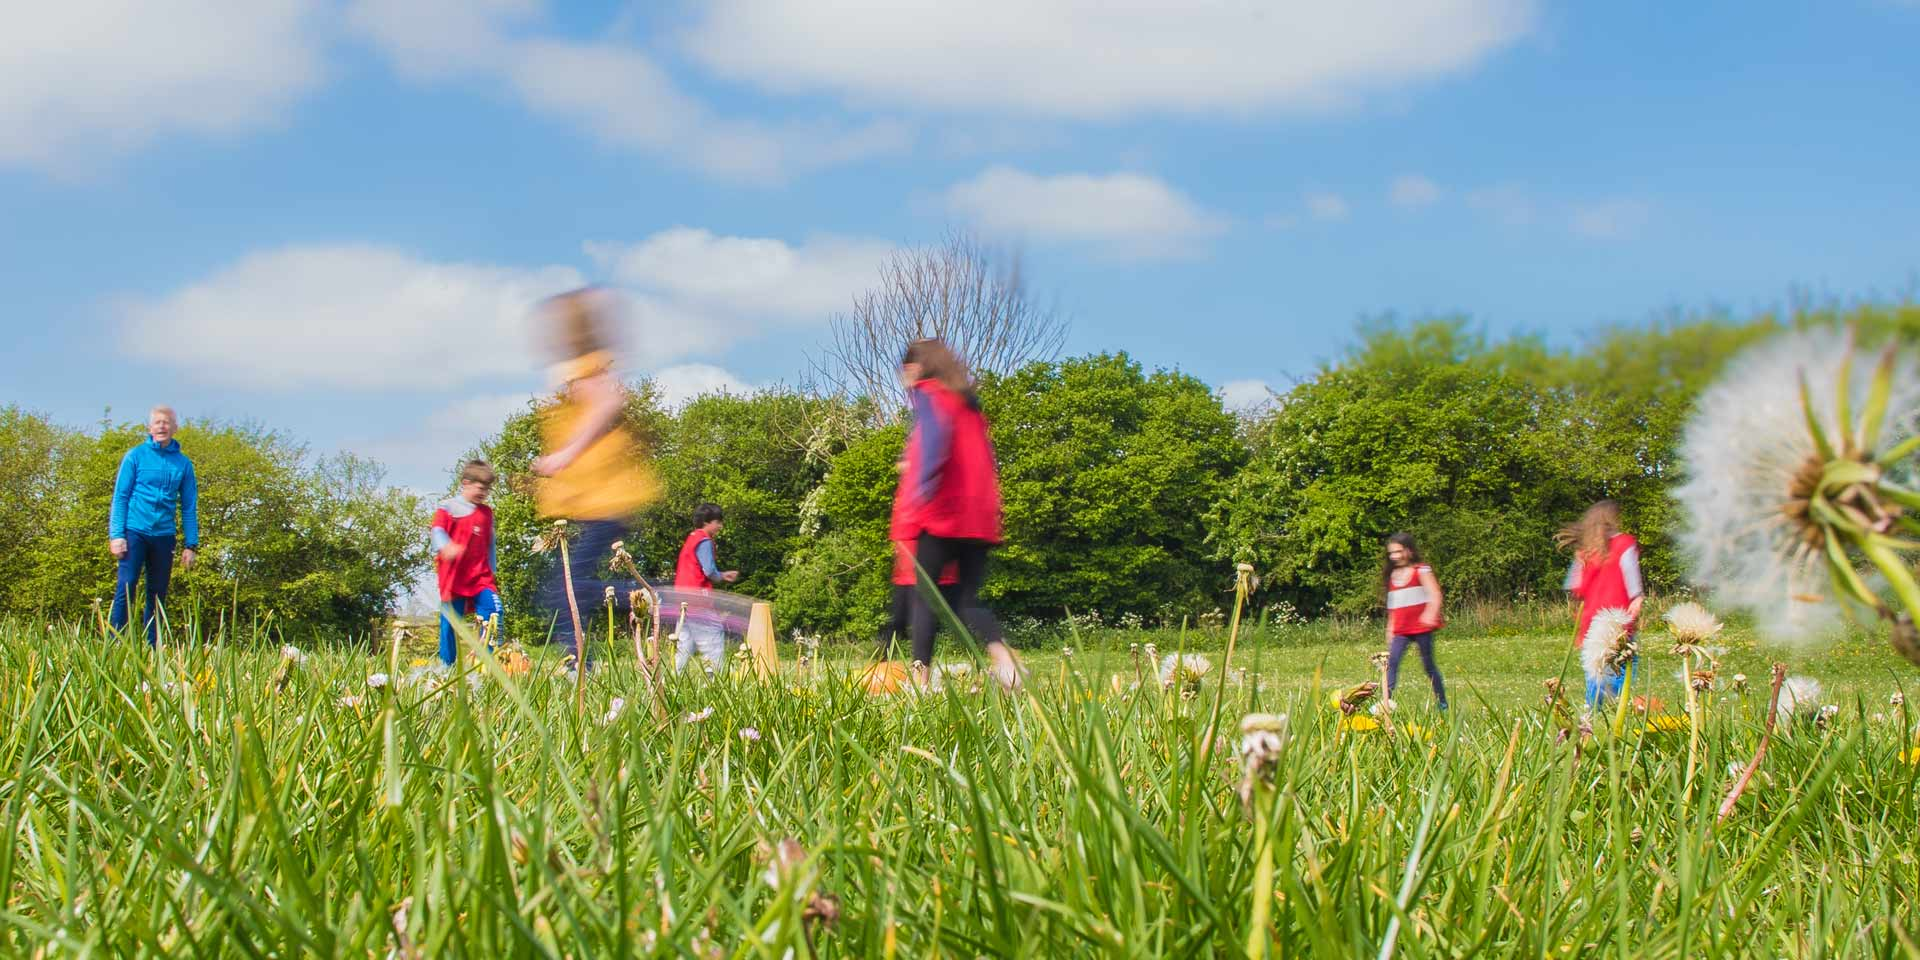 Find out more about outdoor fitness for home-educated children